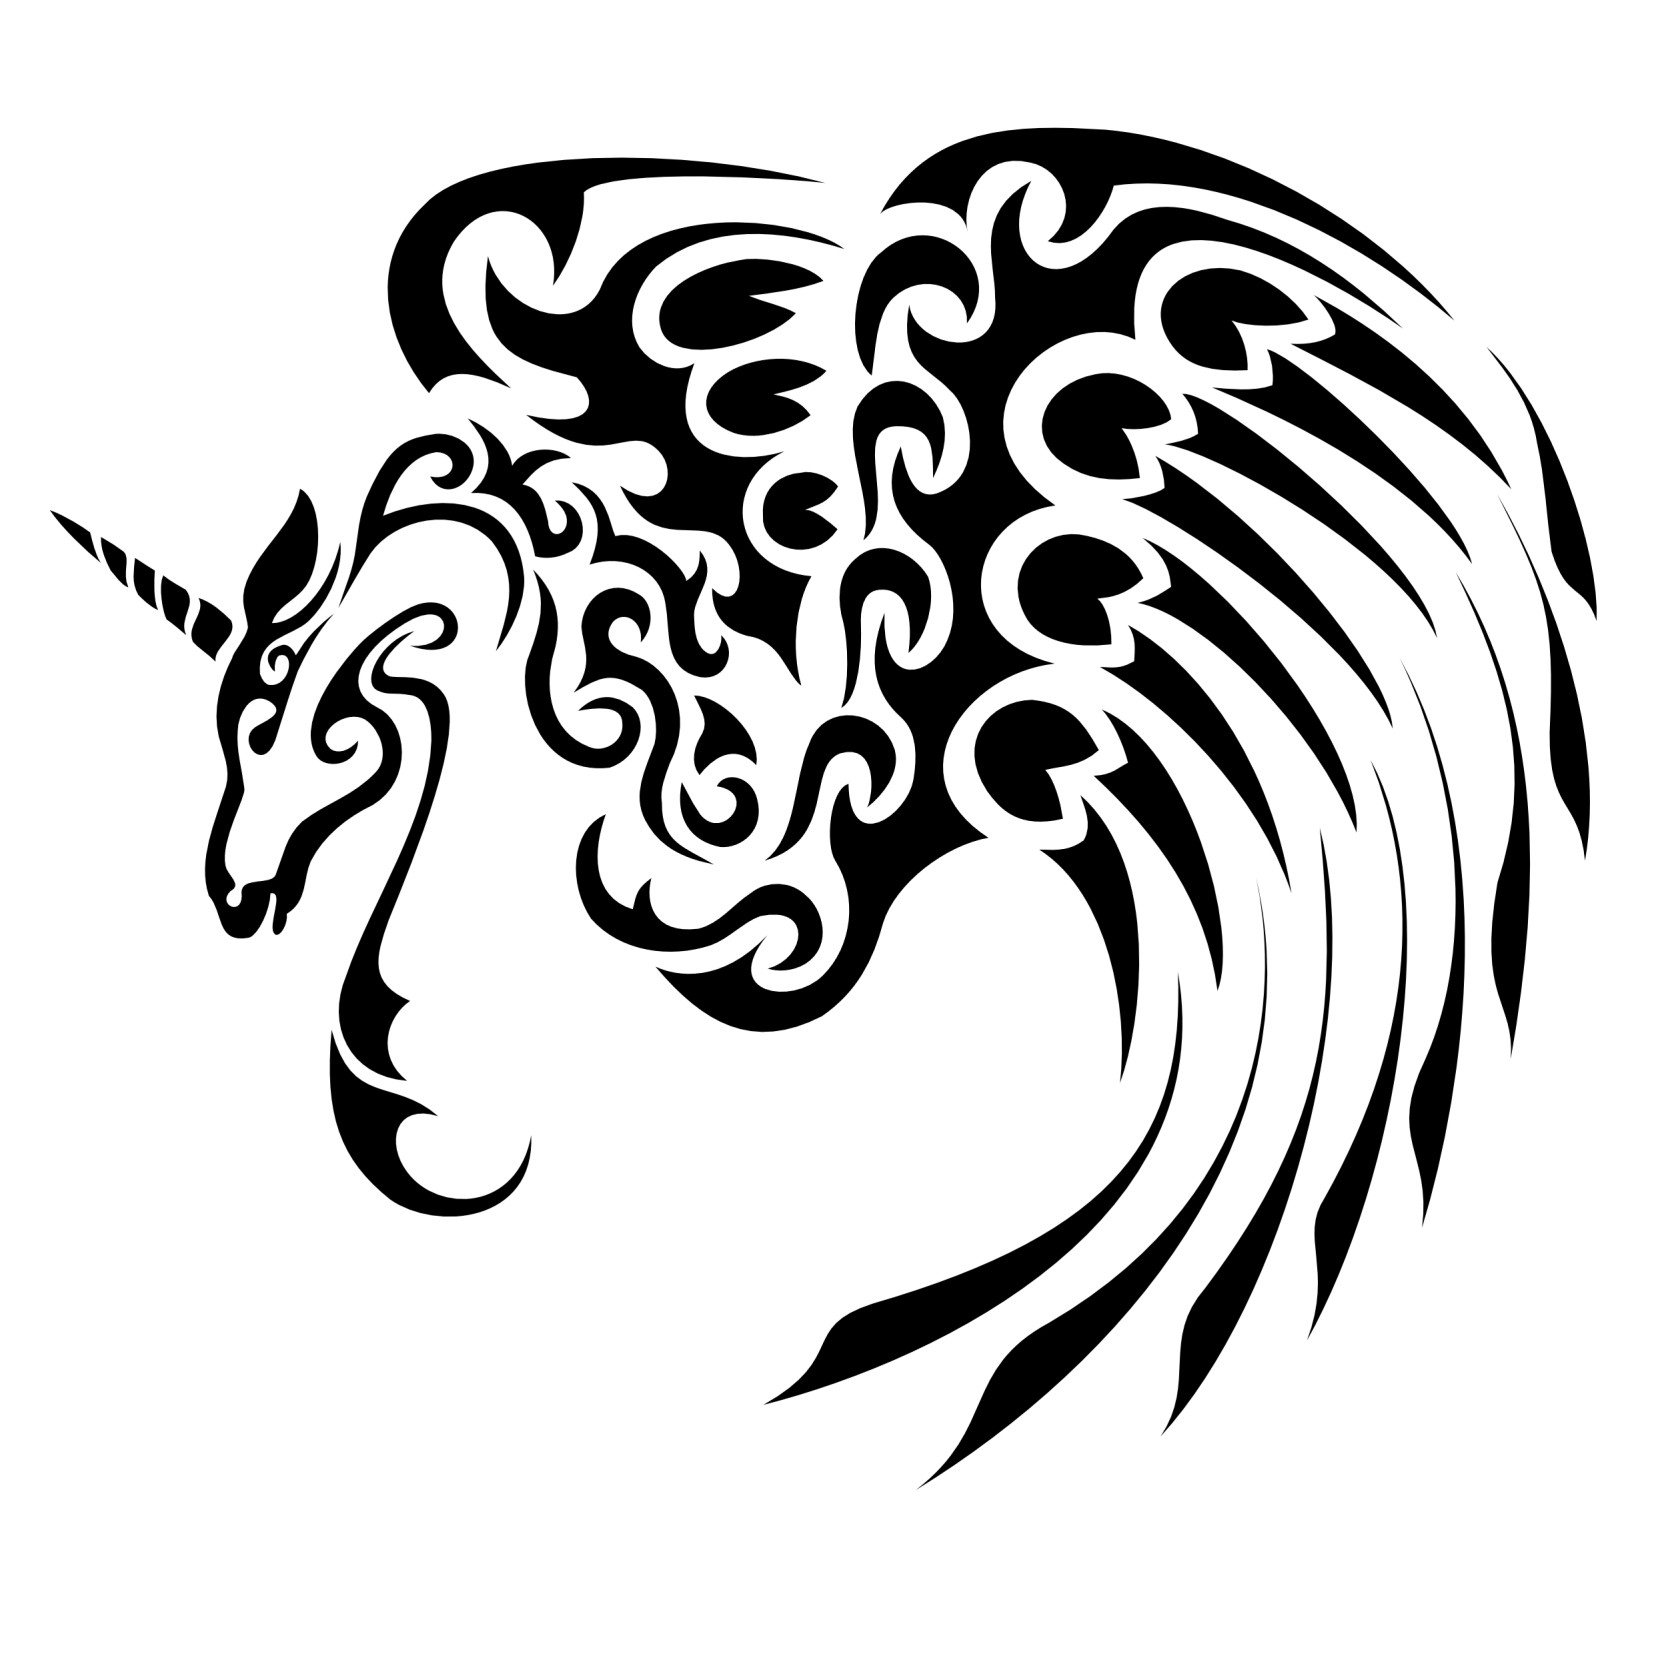 Car sticker design png - Tattoo Tribes Shape Your Dreams Tattoos And Their Meaning Unicorn Pegasus Car Decalsvinyl